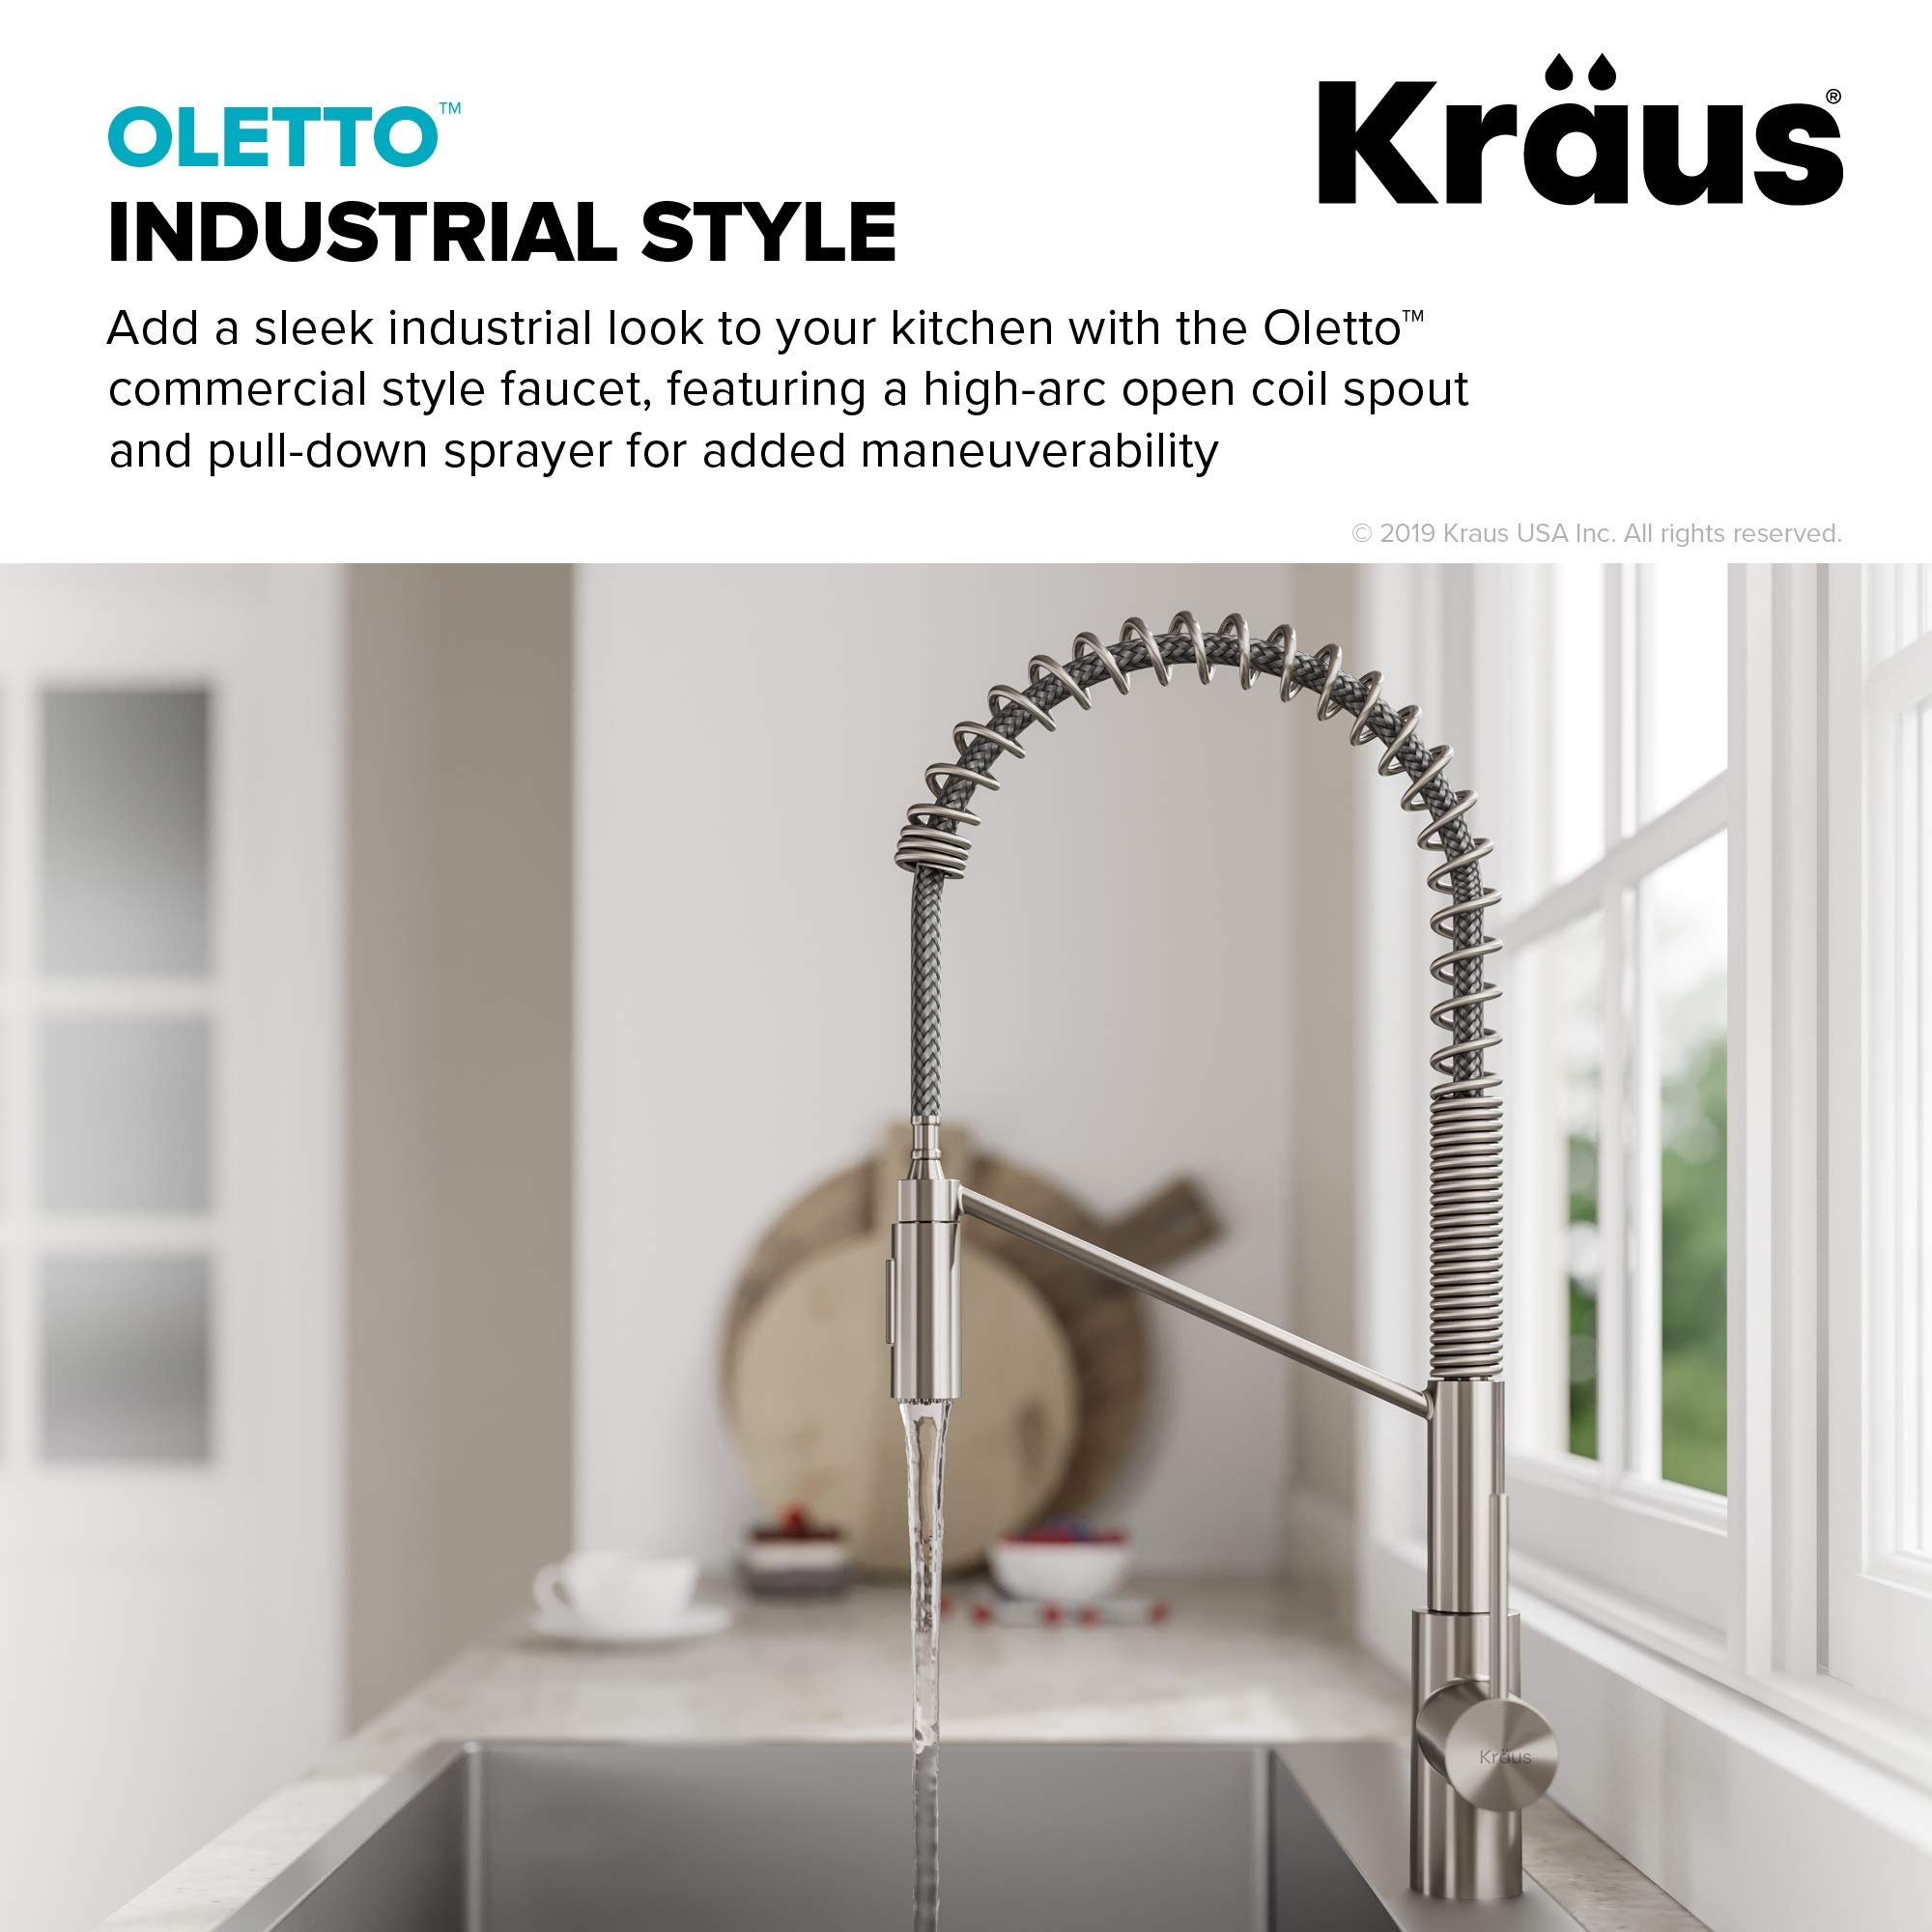 Kraus KPF-2631SFS Oletto Kitchen Faucet, 21.75 inch, Spot Free Stainless Steel by Kraus (Image #6)